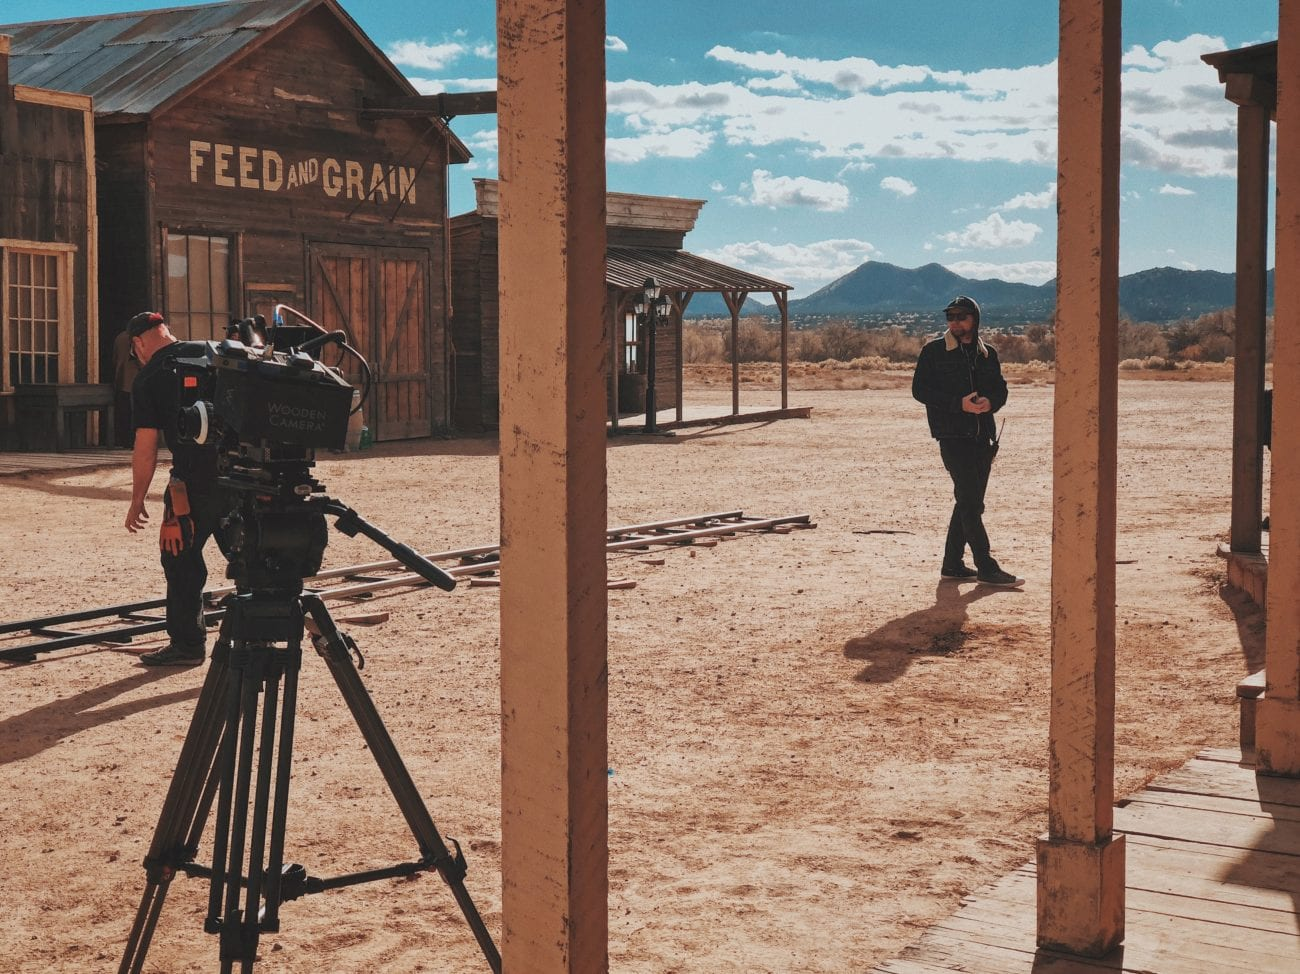 Here are tips for beginner filmmakers should observe through the entire process of production if they want their work to stand out and appear professional.